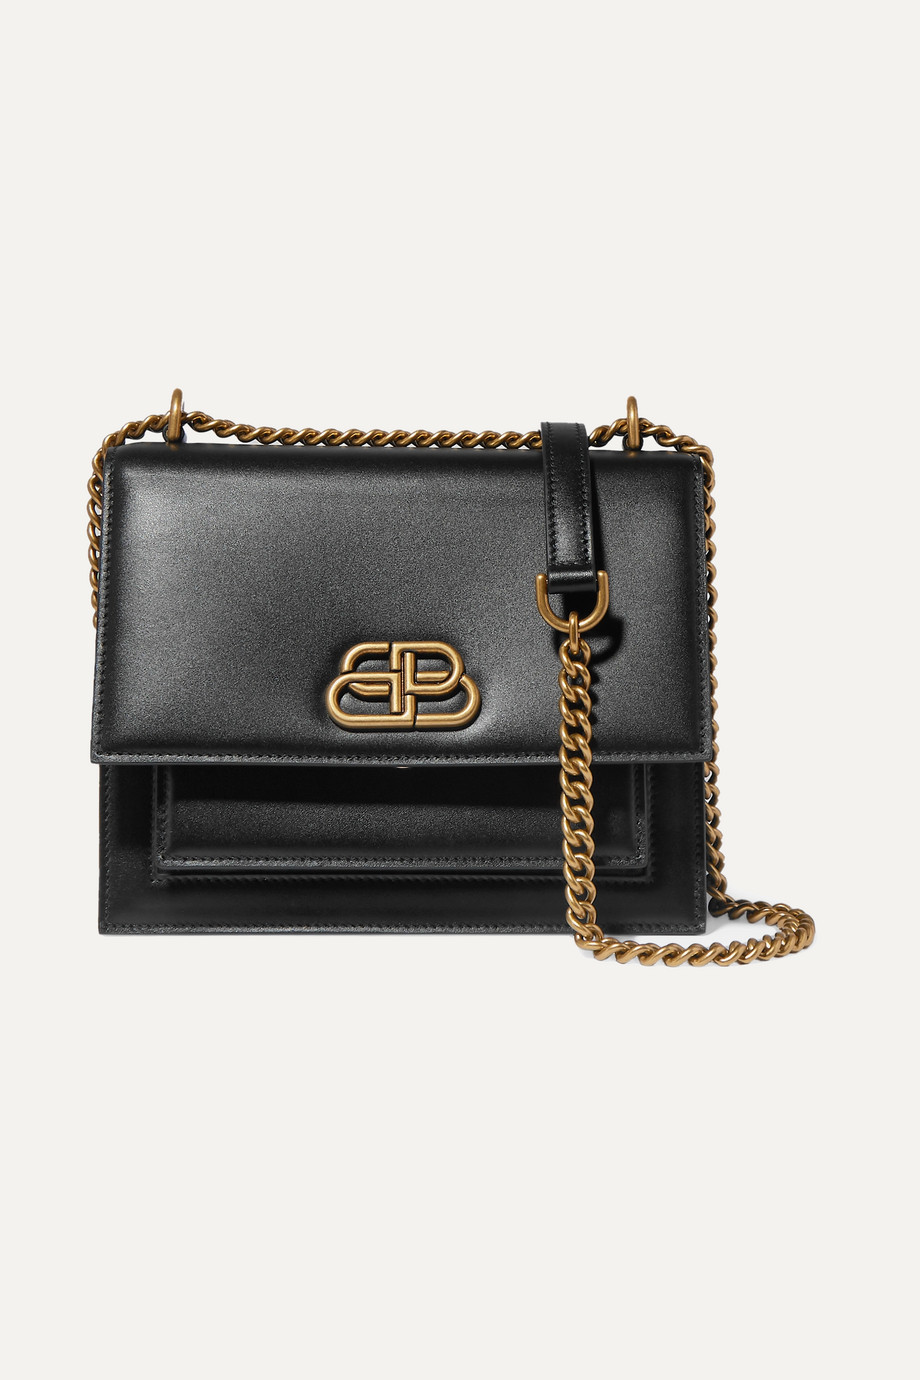 Balenciaga Sharp S leather shoulder bag